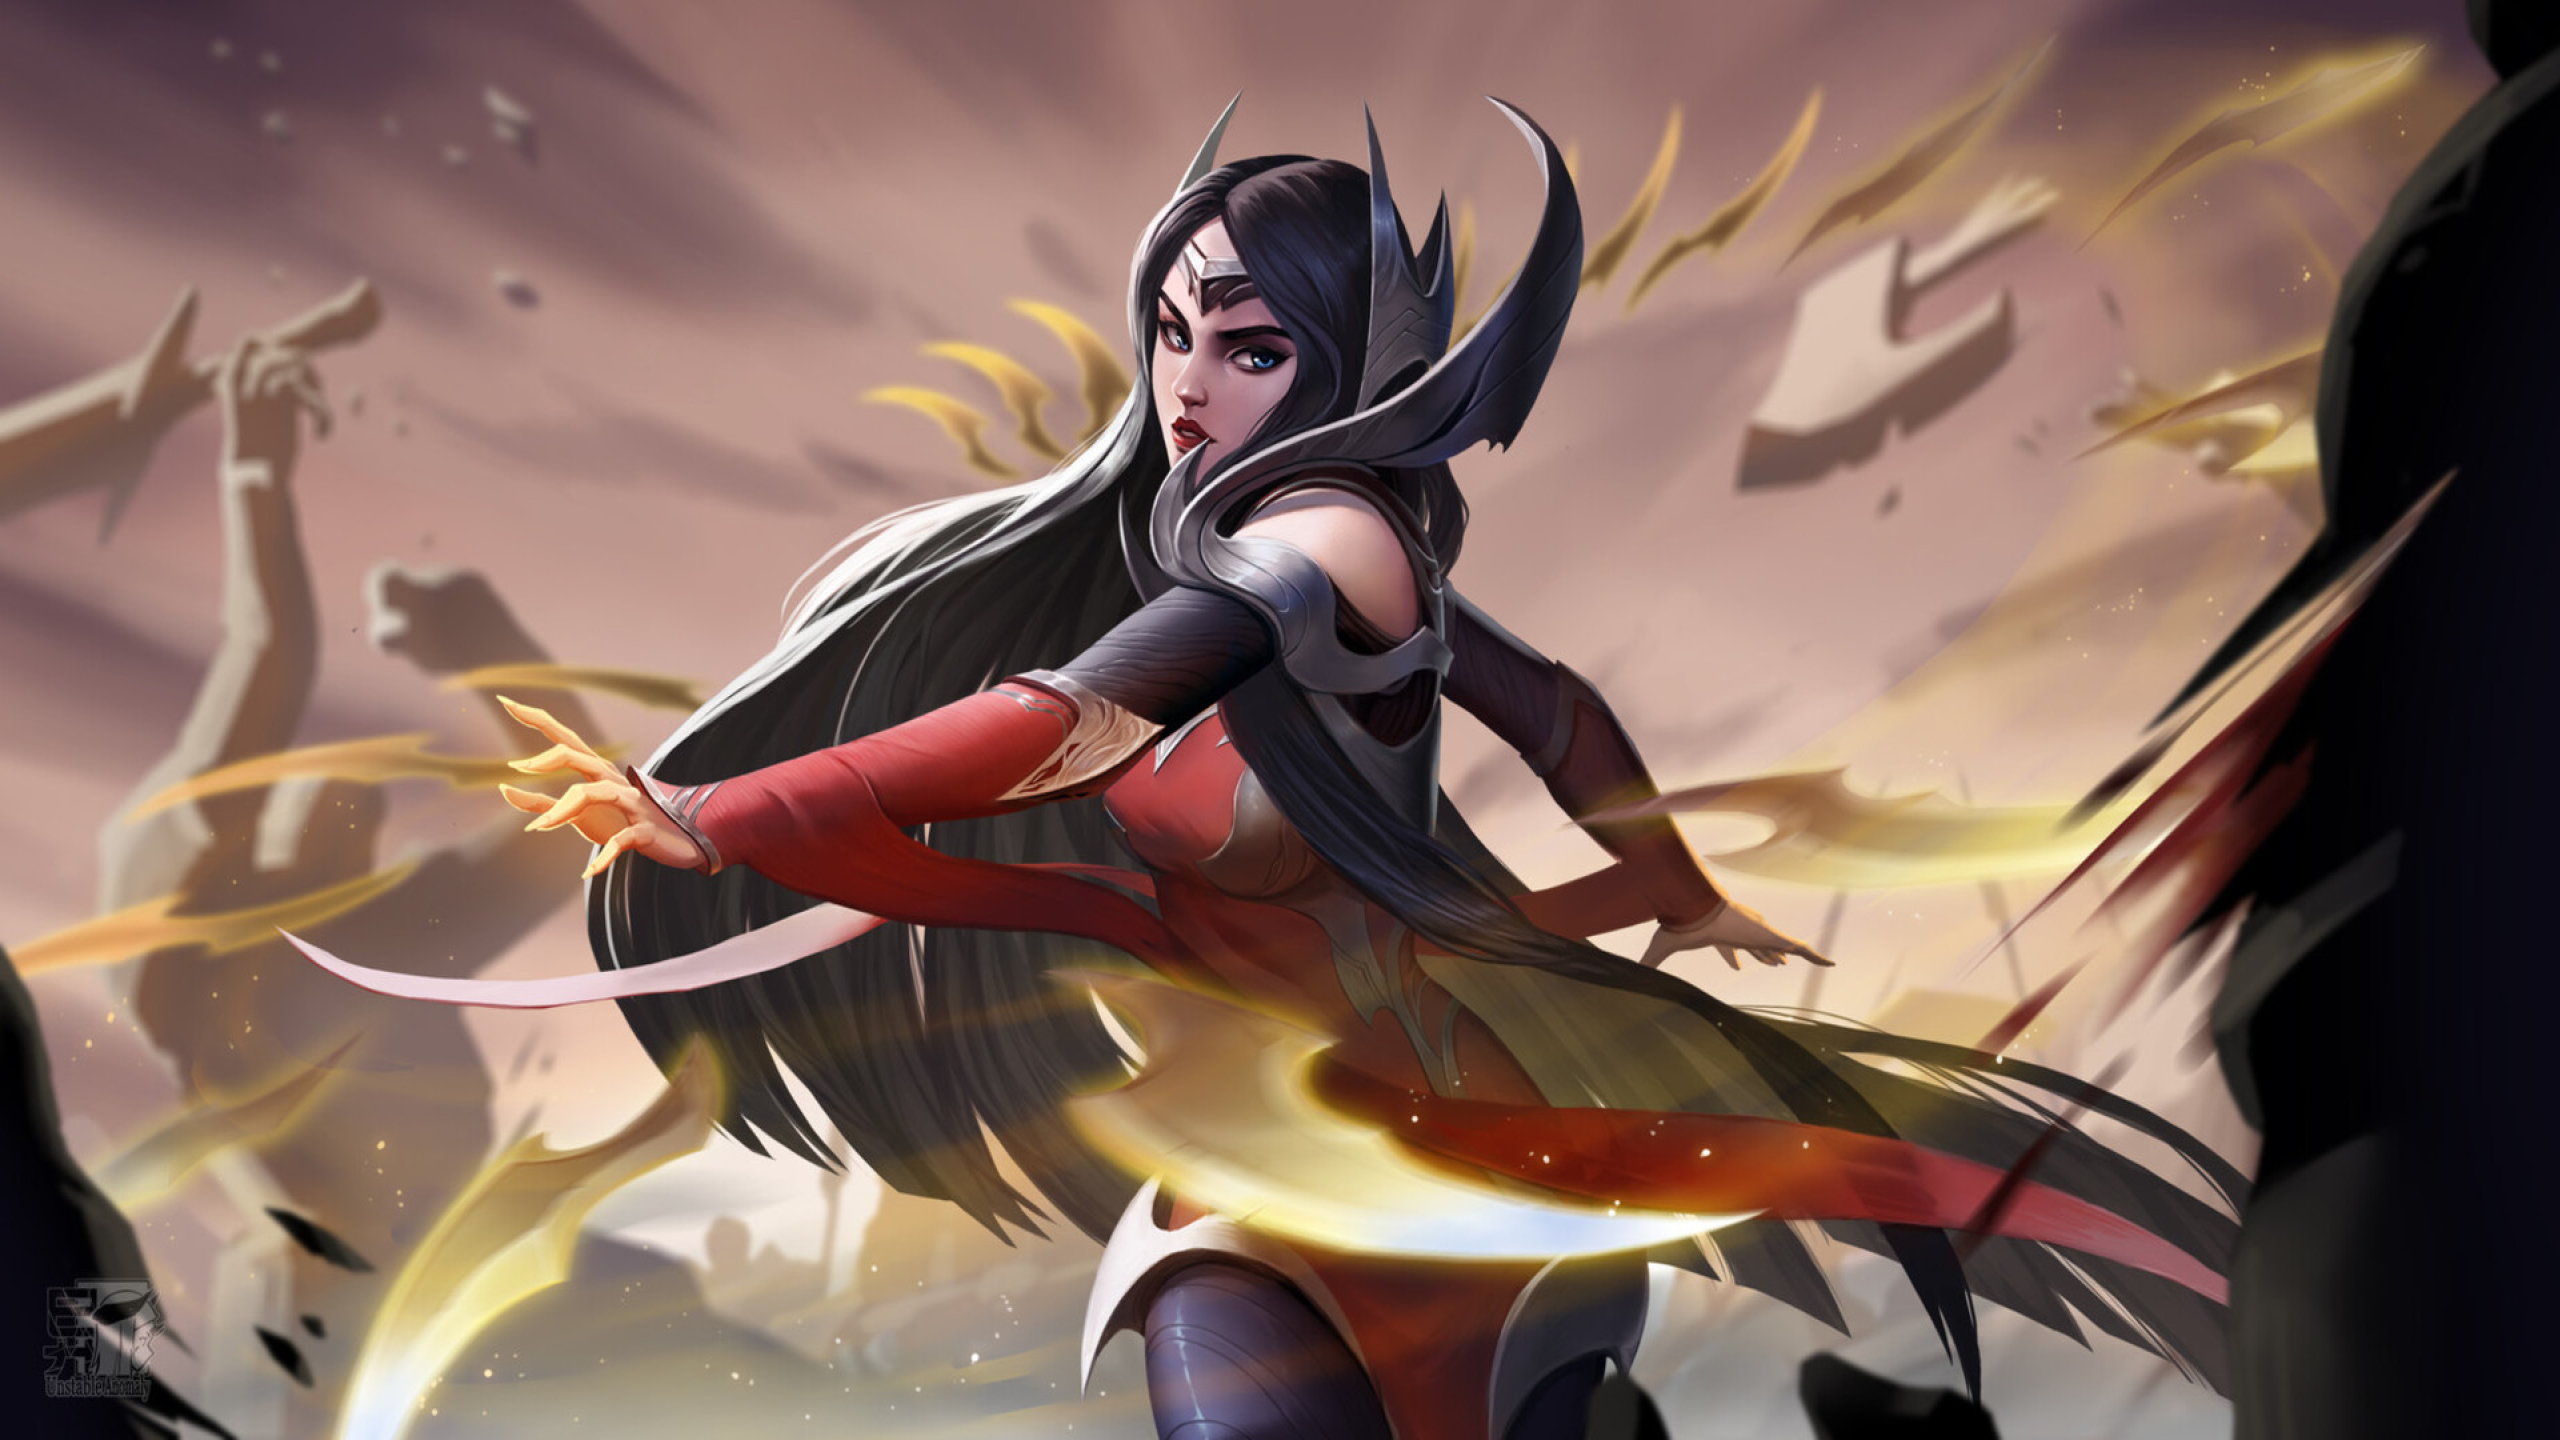 2560x1440 Irelia League Of Legends 1440p Resolution Wallpaper Hd